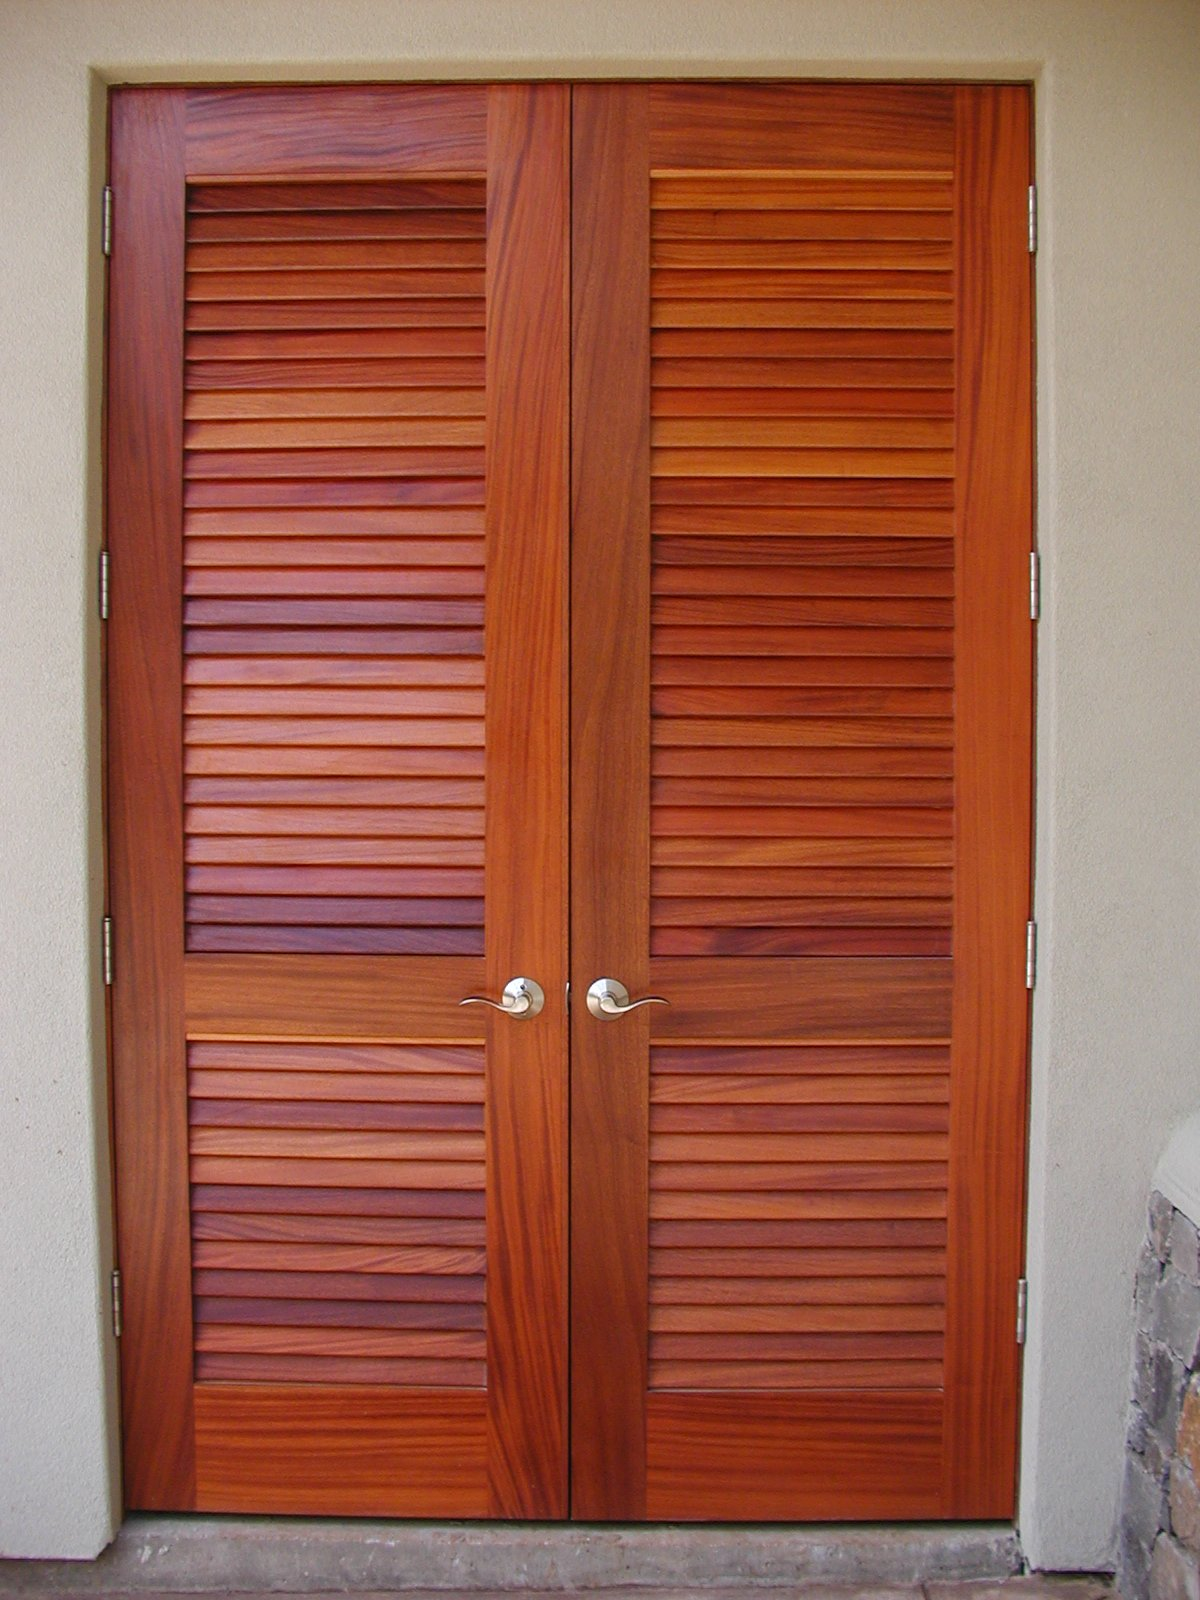 1600 #AA4A21 Quality Architectural Woodwork Doors picture/photo Millwork Doors 48191200